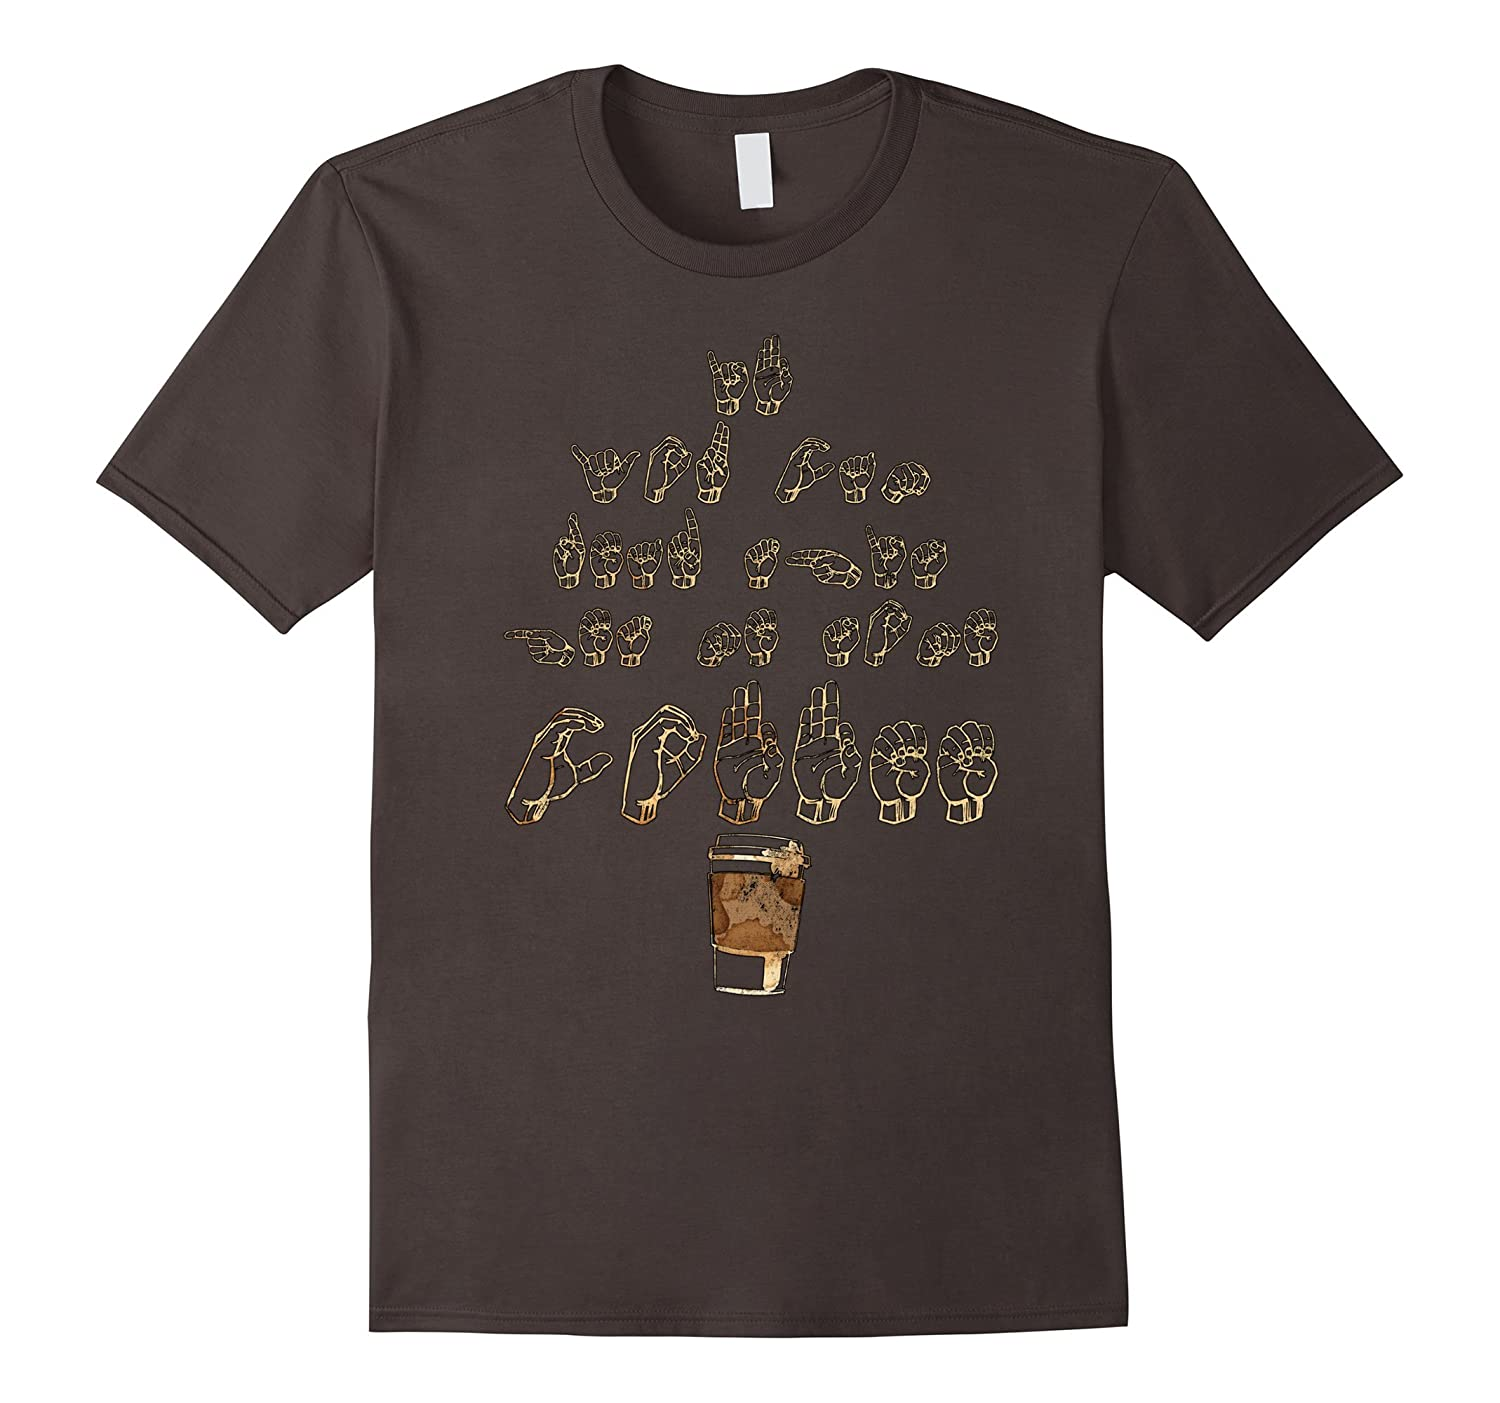 If You Can Read This Get Coffee American Sign Language Shirt-TD